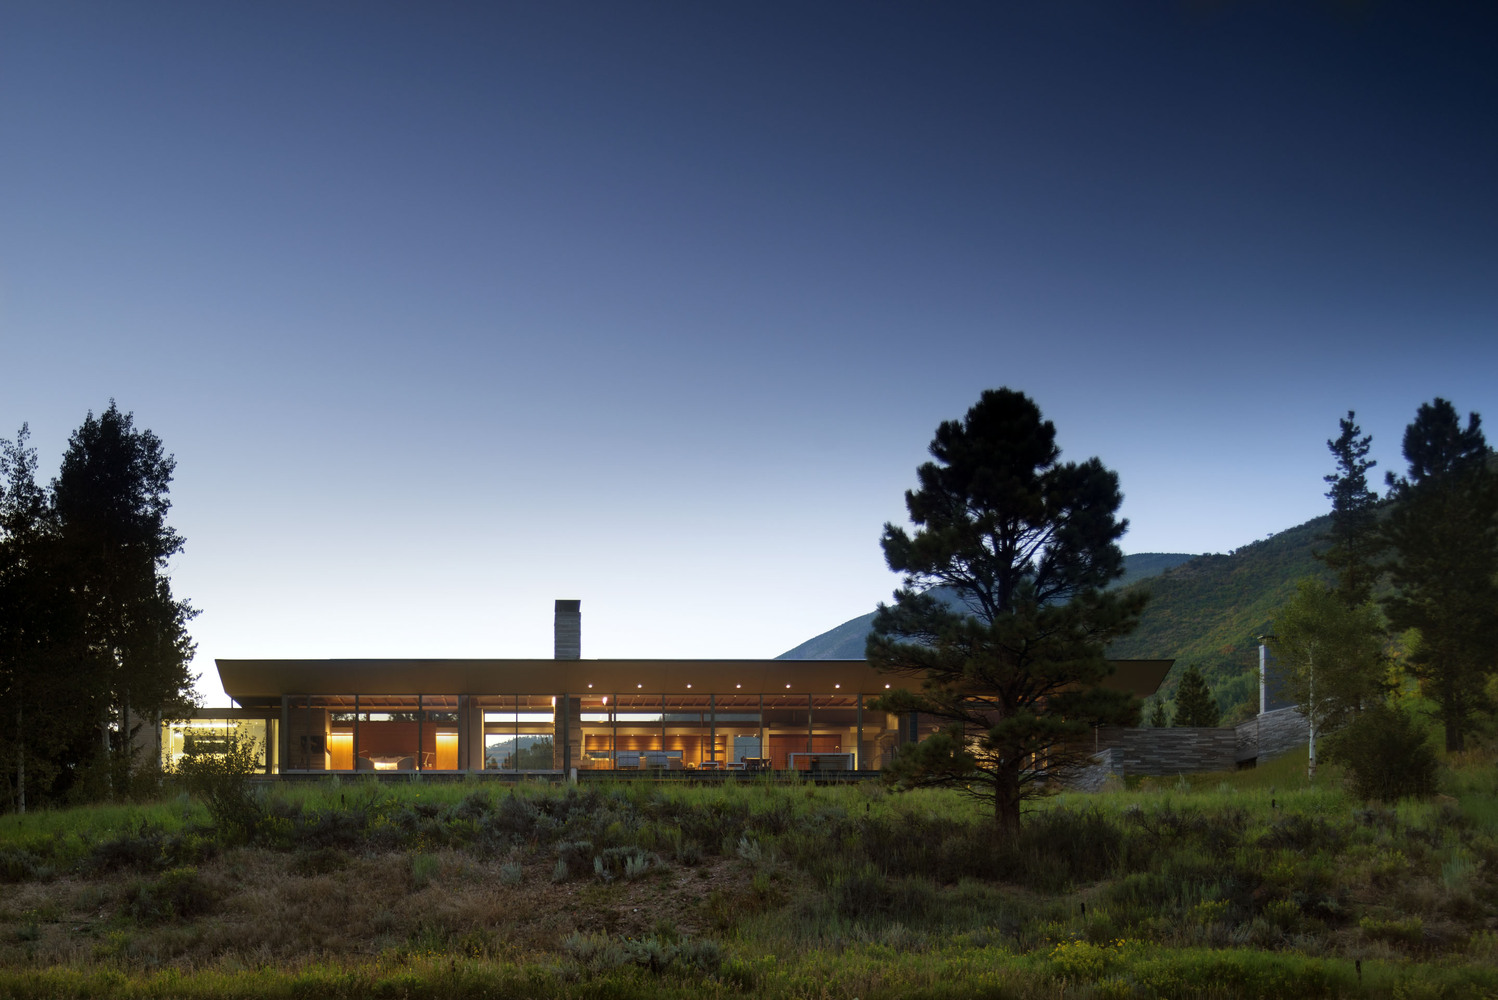 The Independence Pass Residence gives off a modern-mountain vibe that is both classy and warm.